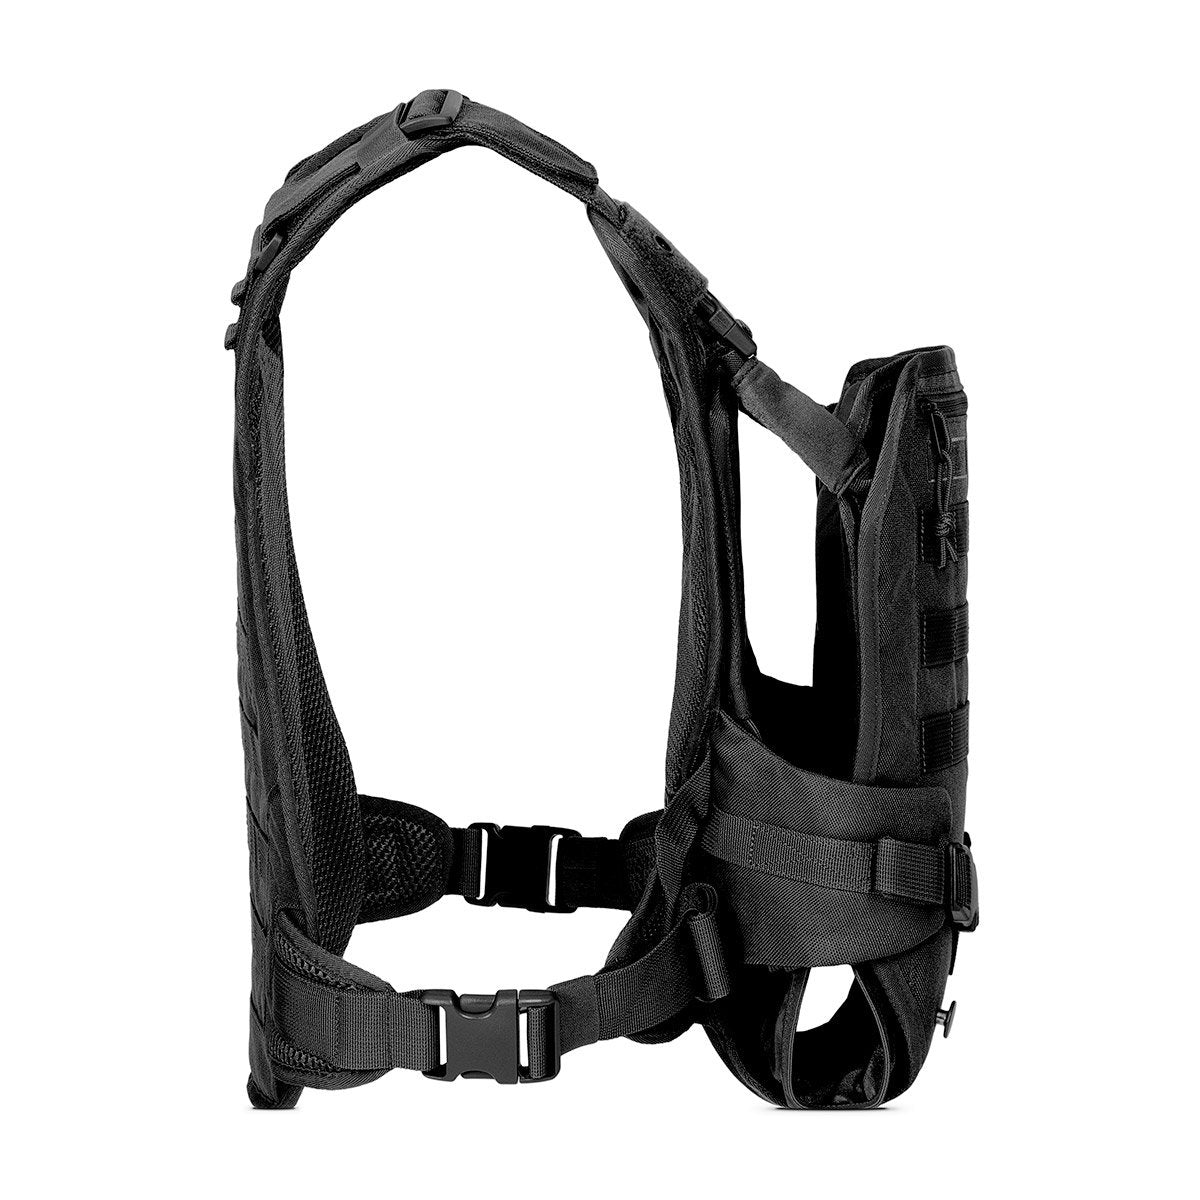 S.01 Action Baby Carrier - Traverse Kit